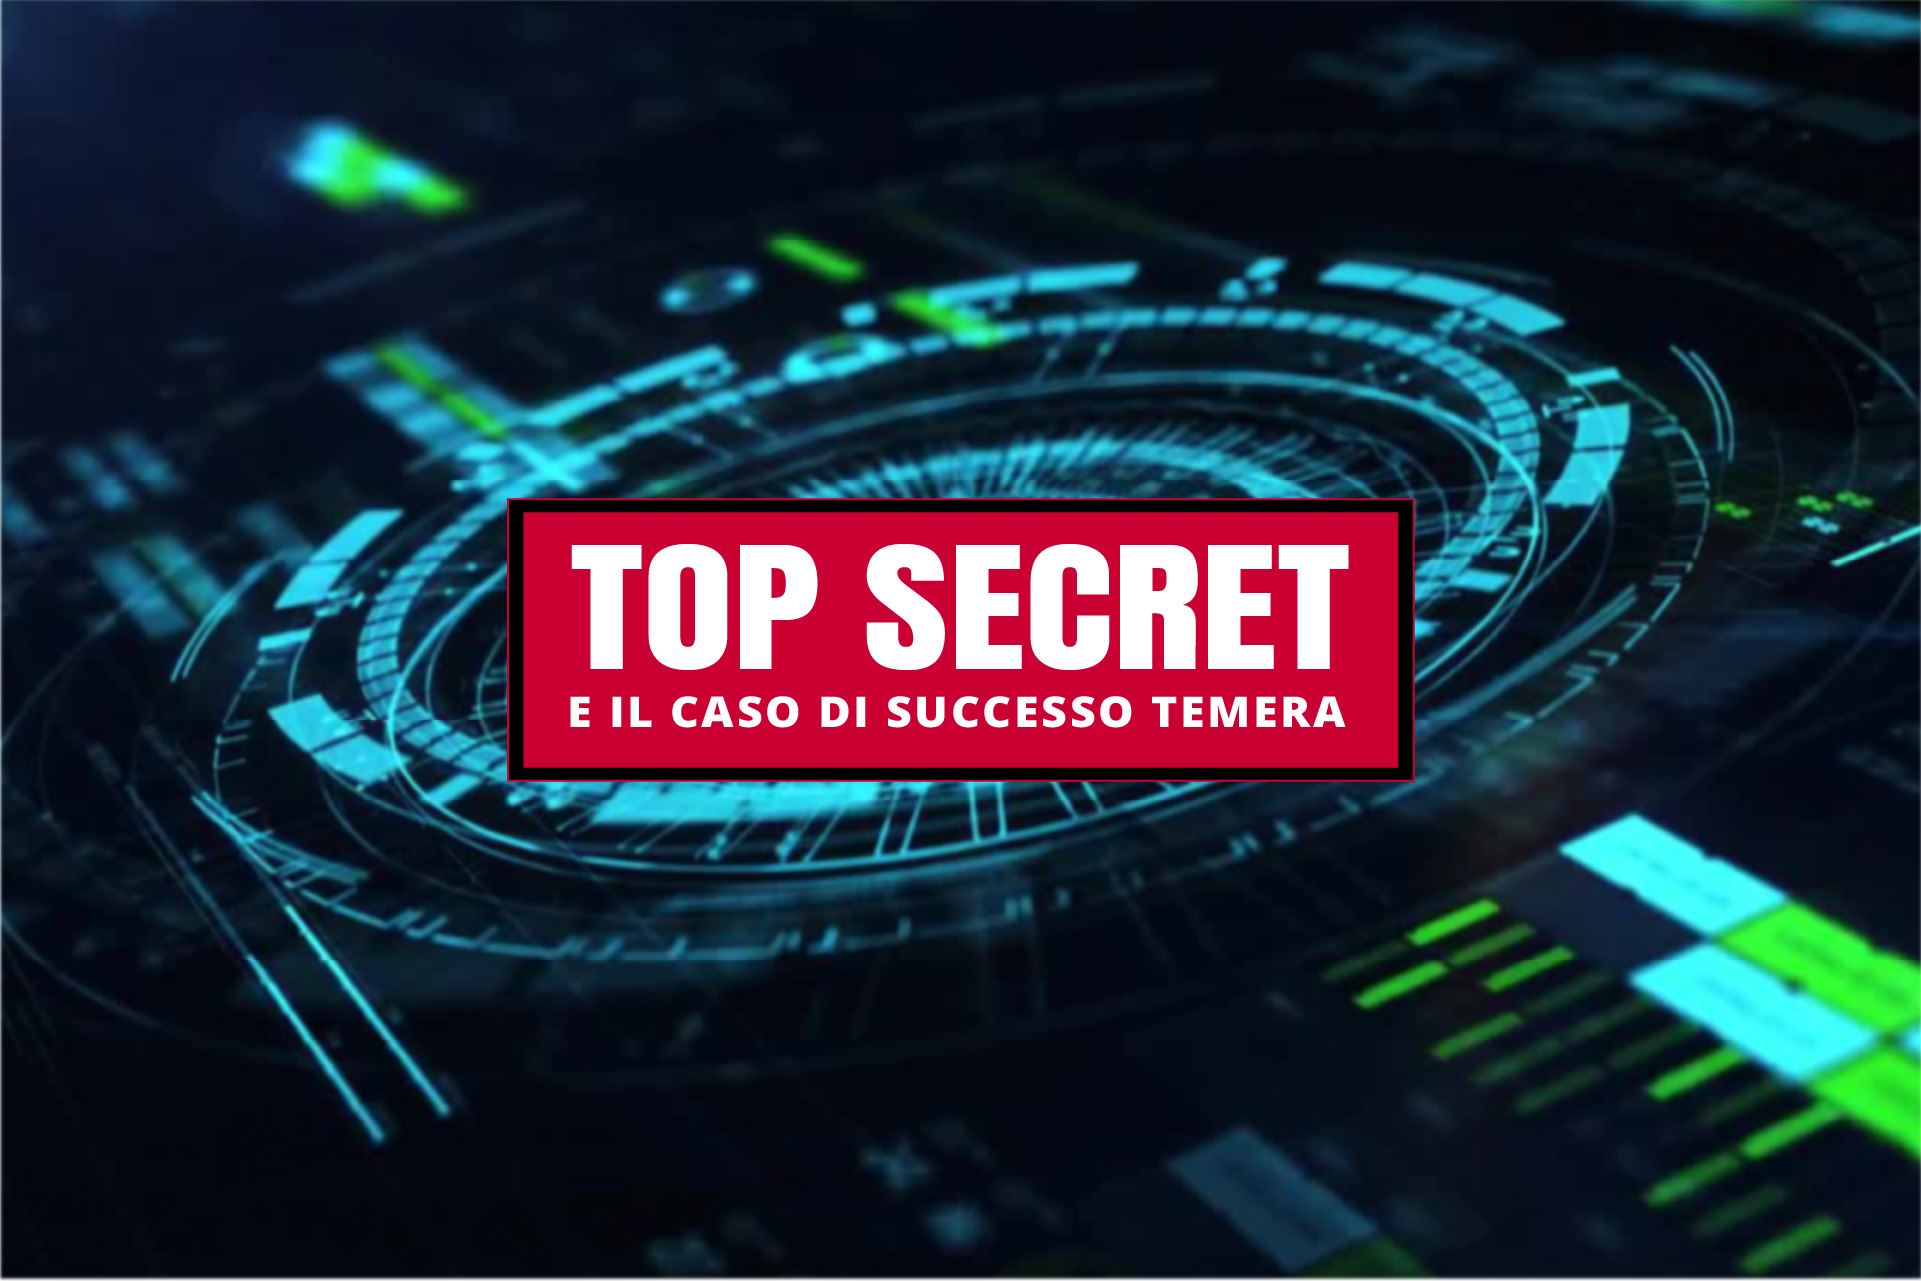 CEO Arcangelo D'Onofrio interview by Top Secret